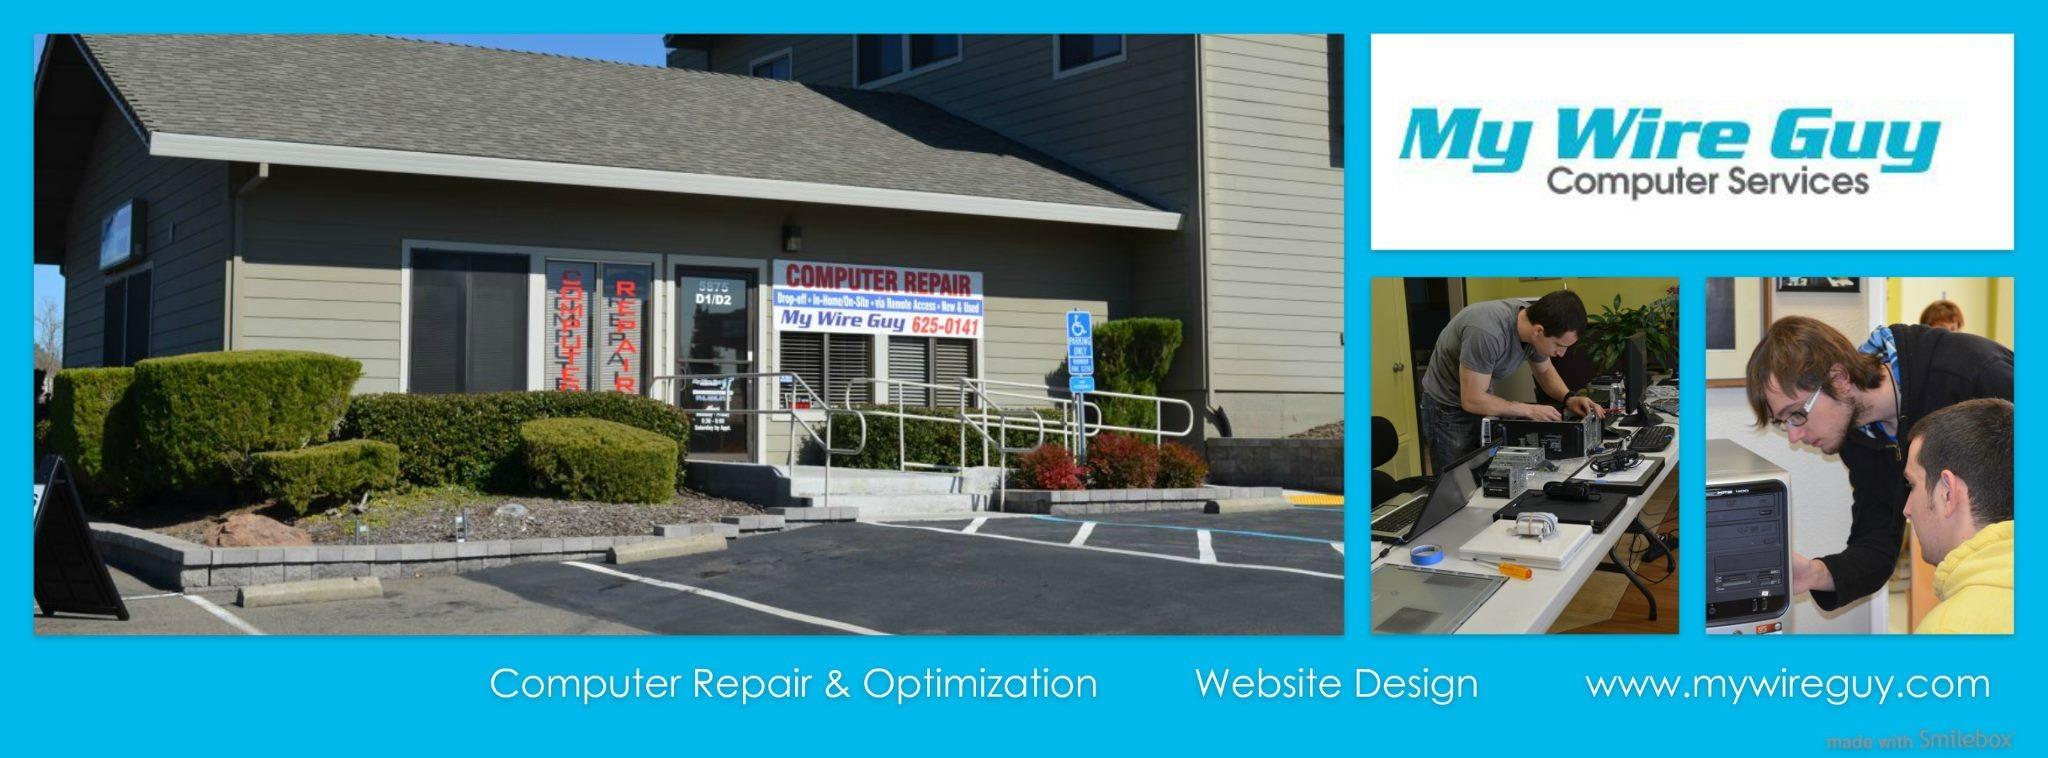 My Wire Guy Computer Services In Rocklin Ca Whitepages